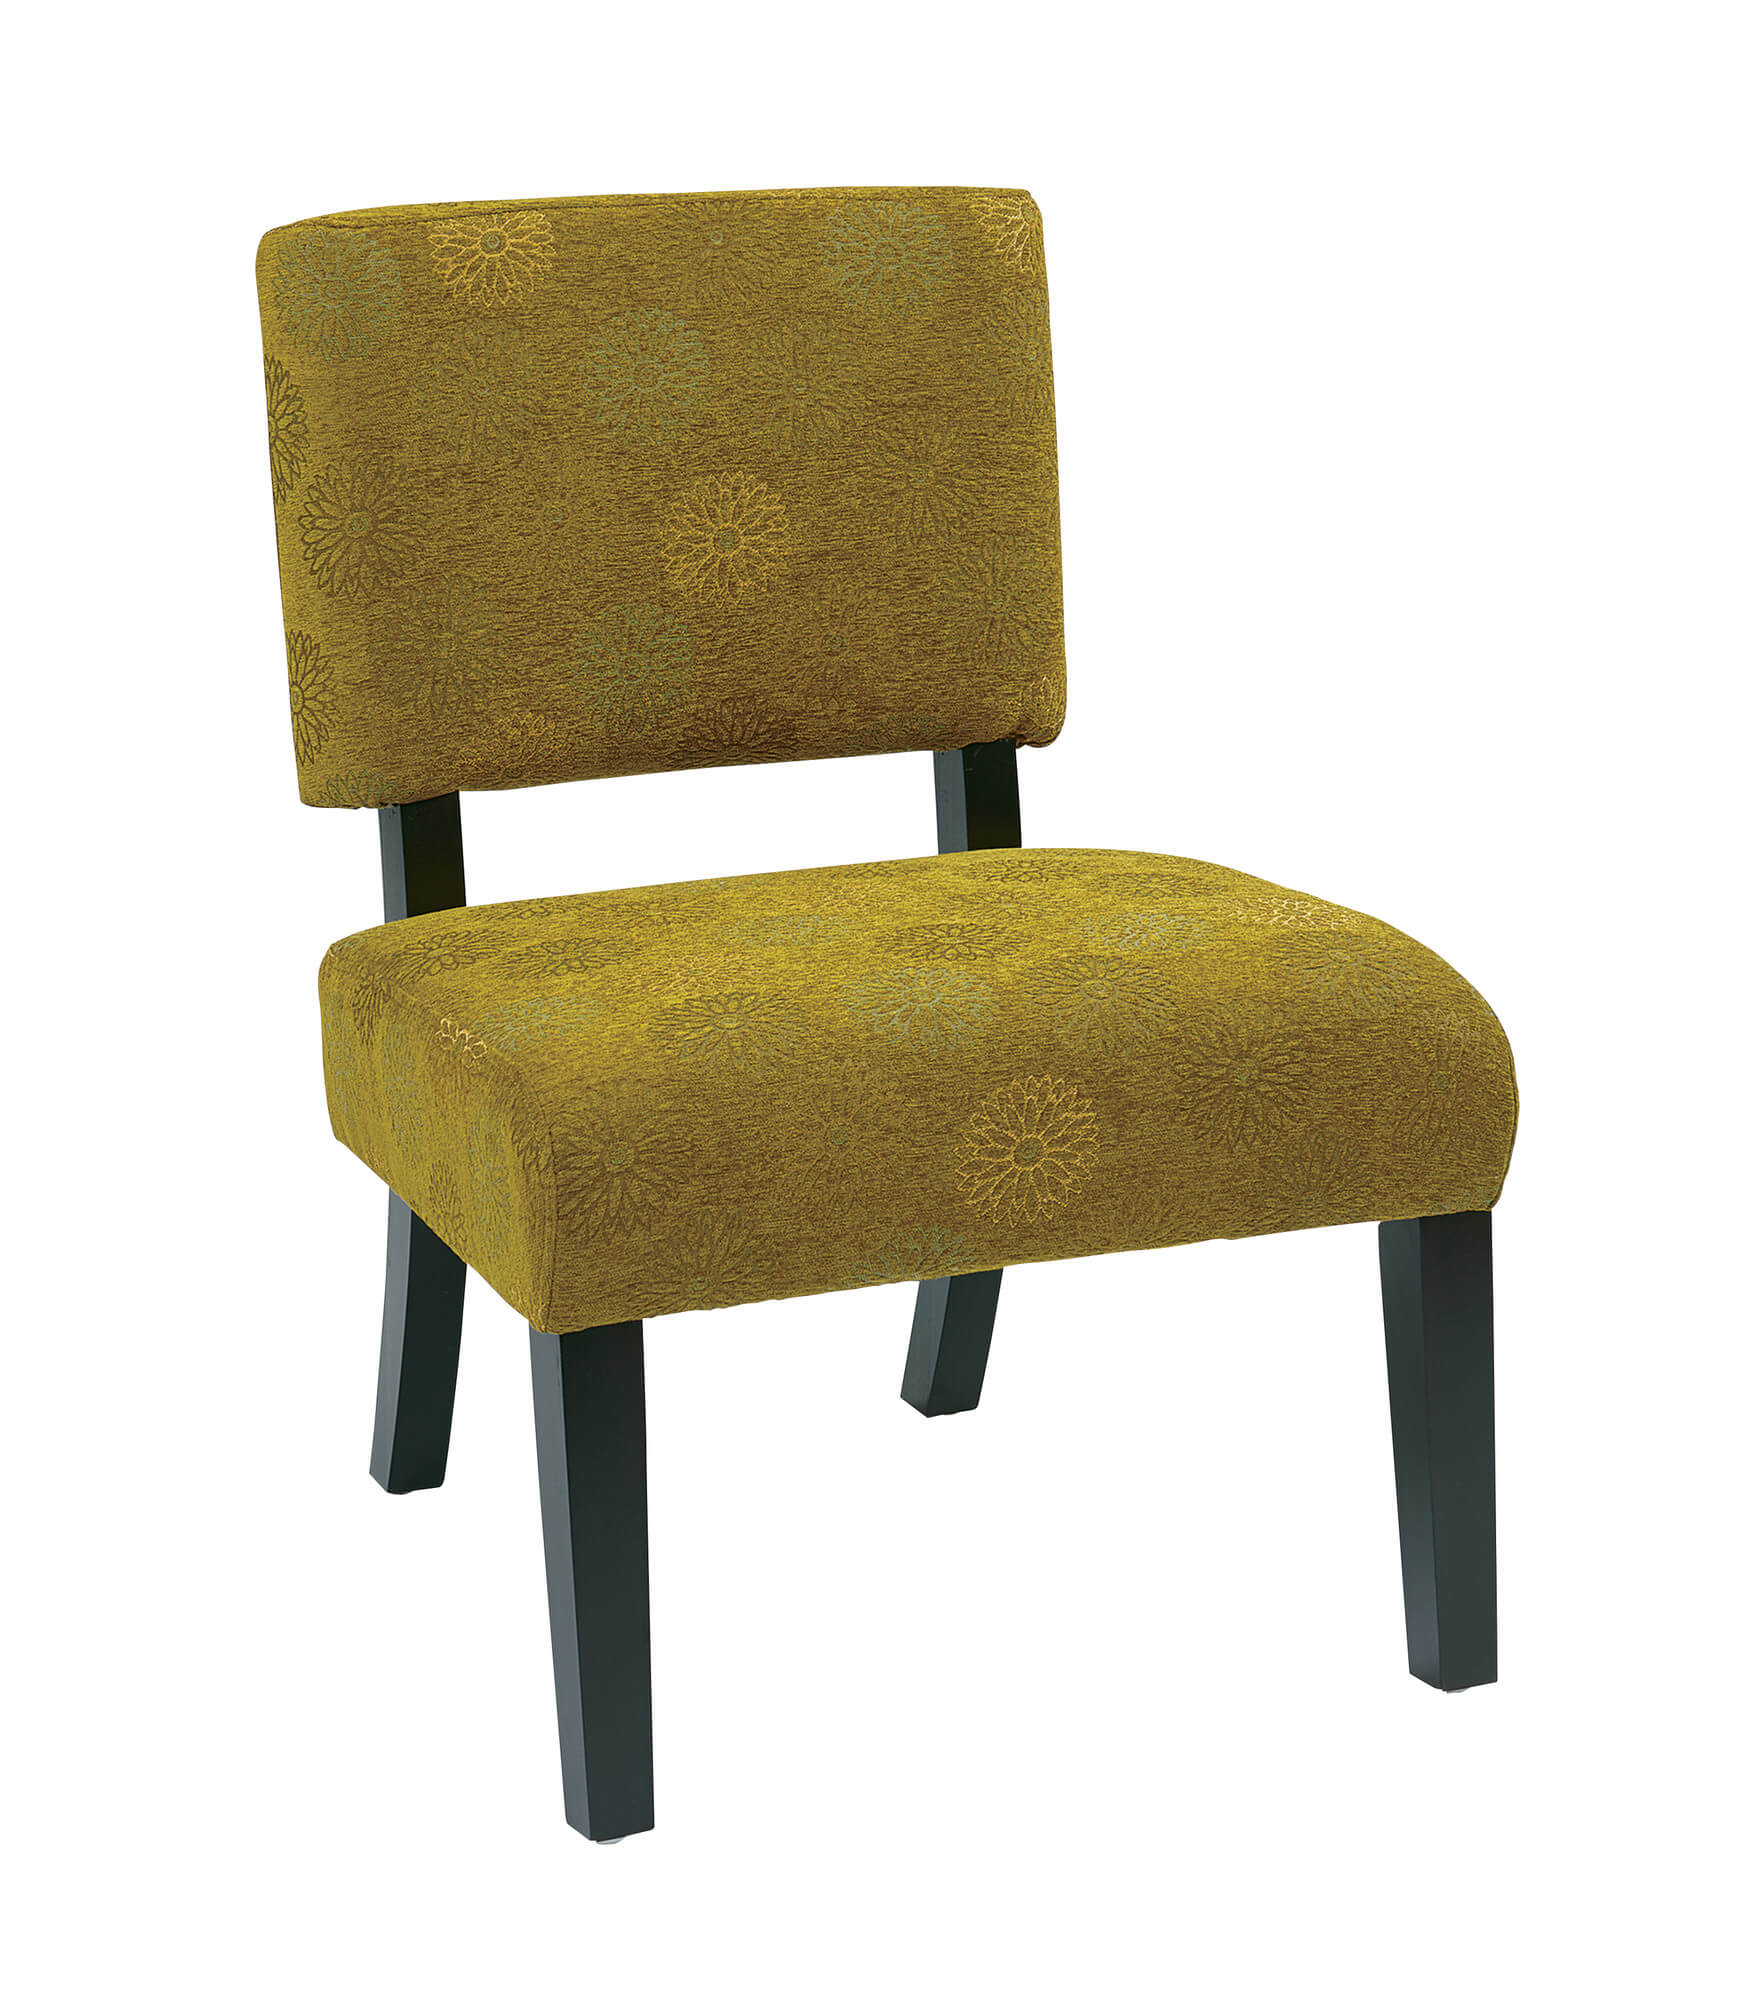 High Quality Hereu0027s A Small Accent Chair Priced Just Under $100 With A Yellow Green  Fabric That